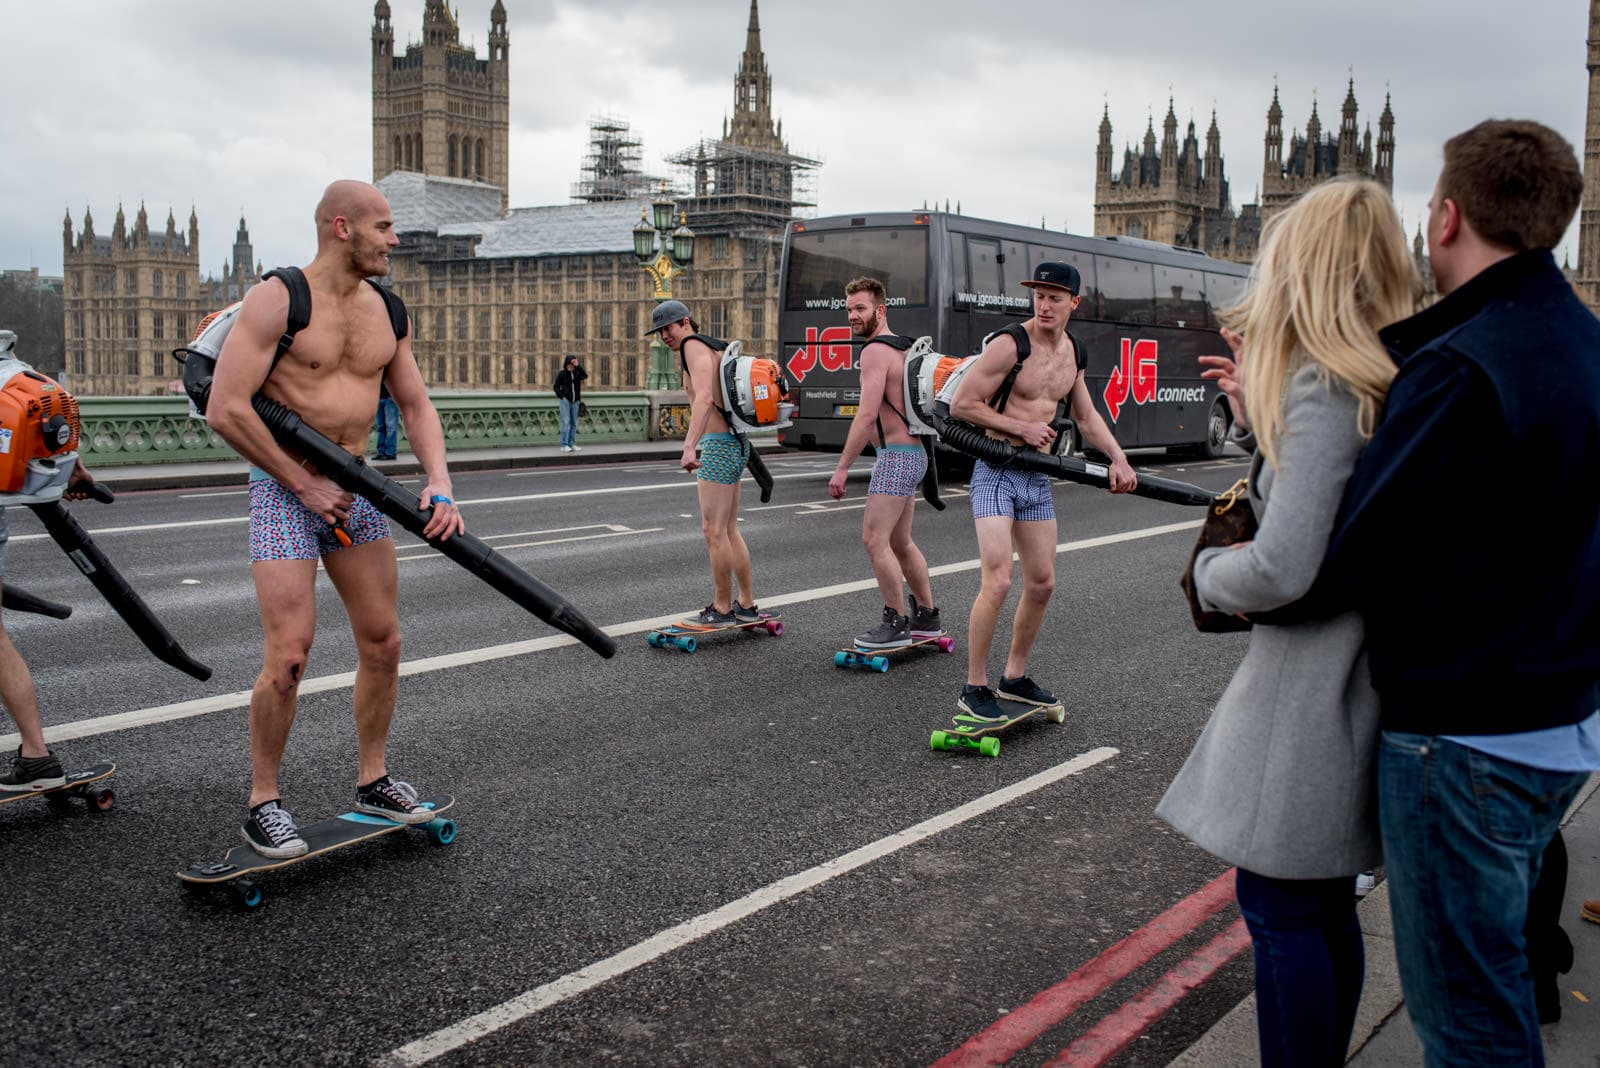 Naked skateboard leaf blower races on Westminster Bridge in central London